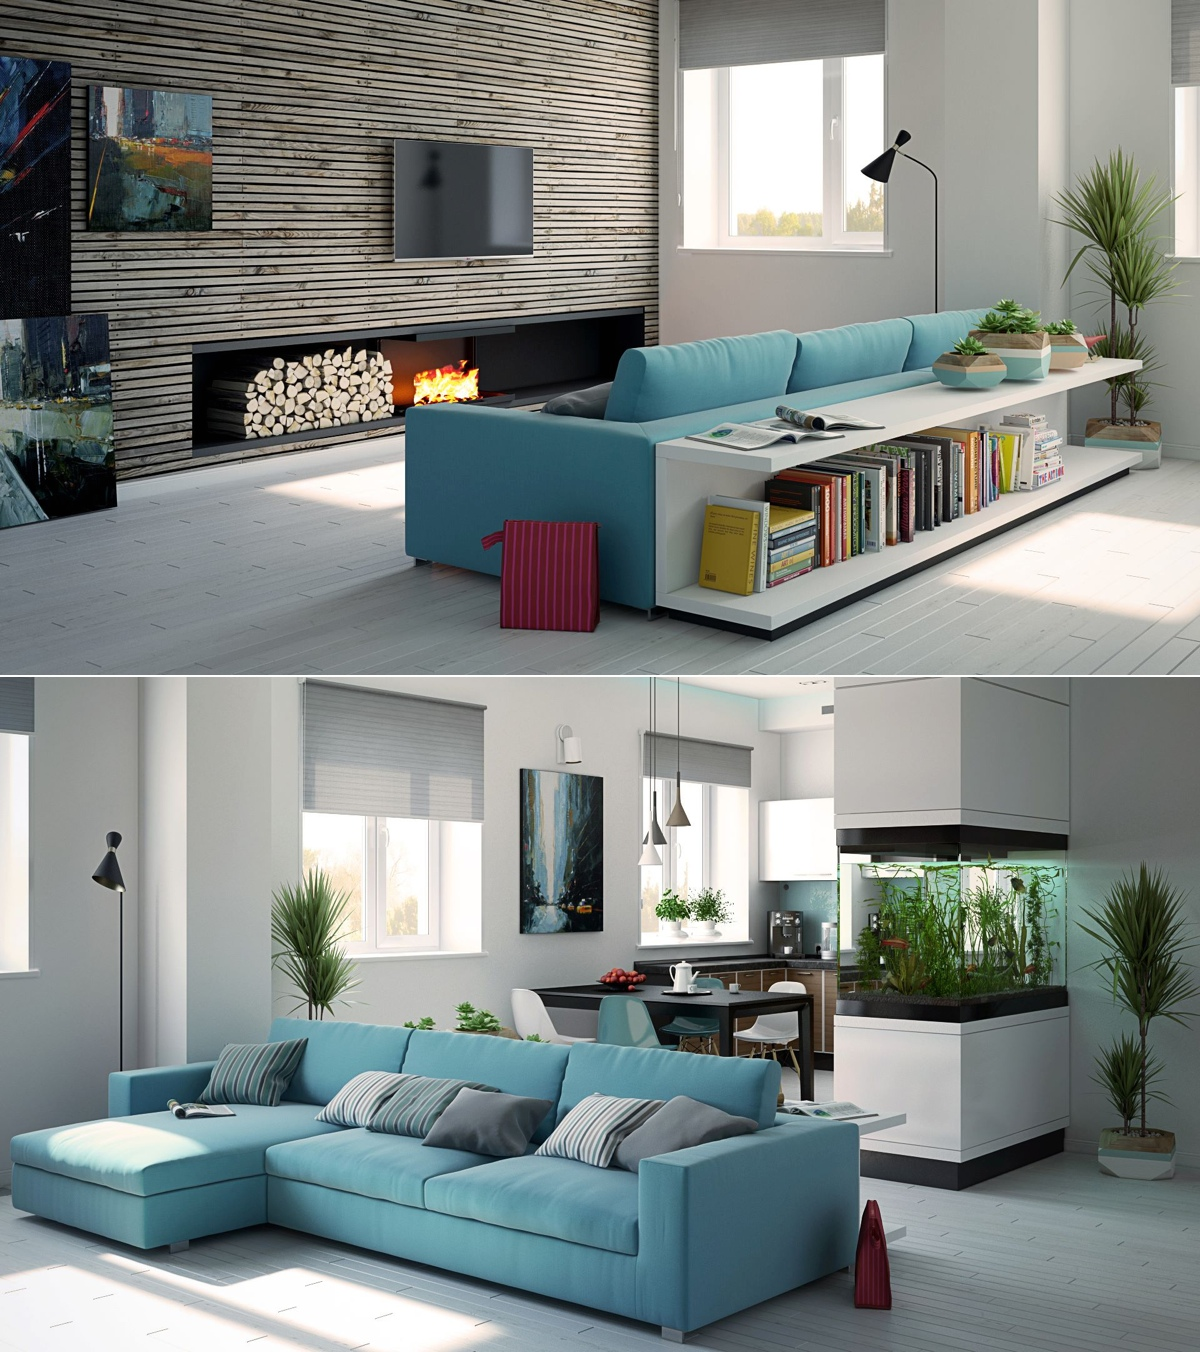 Awesomely Stylish Urban Living Rooms. Ceramic Kitchen Floor. Peel And Stick Backsplashes For Kitchens. Colored Kitchen Faucets. Kitchen With Copper Backsplash. Marble Kitchen Backsplash. Faux Brick For Kitchen Backsplash. Color Combinations For Kitchens. Ceramic Kitchen Tiles Floor